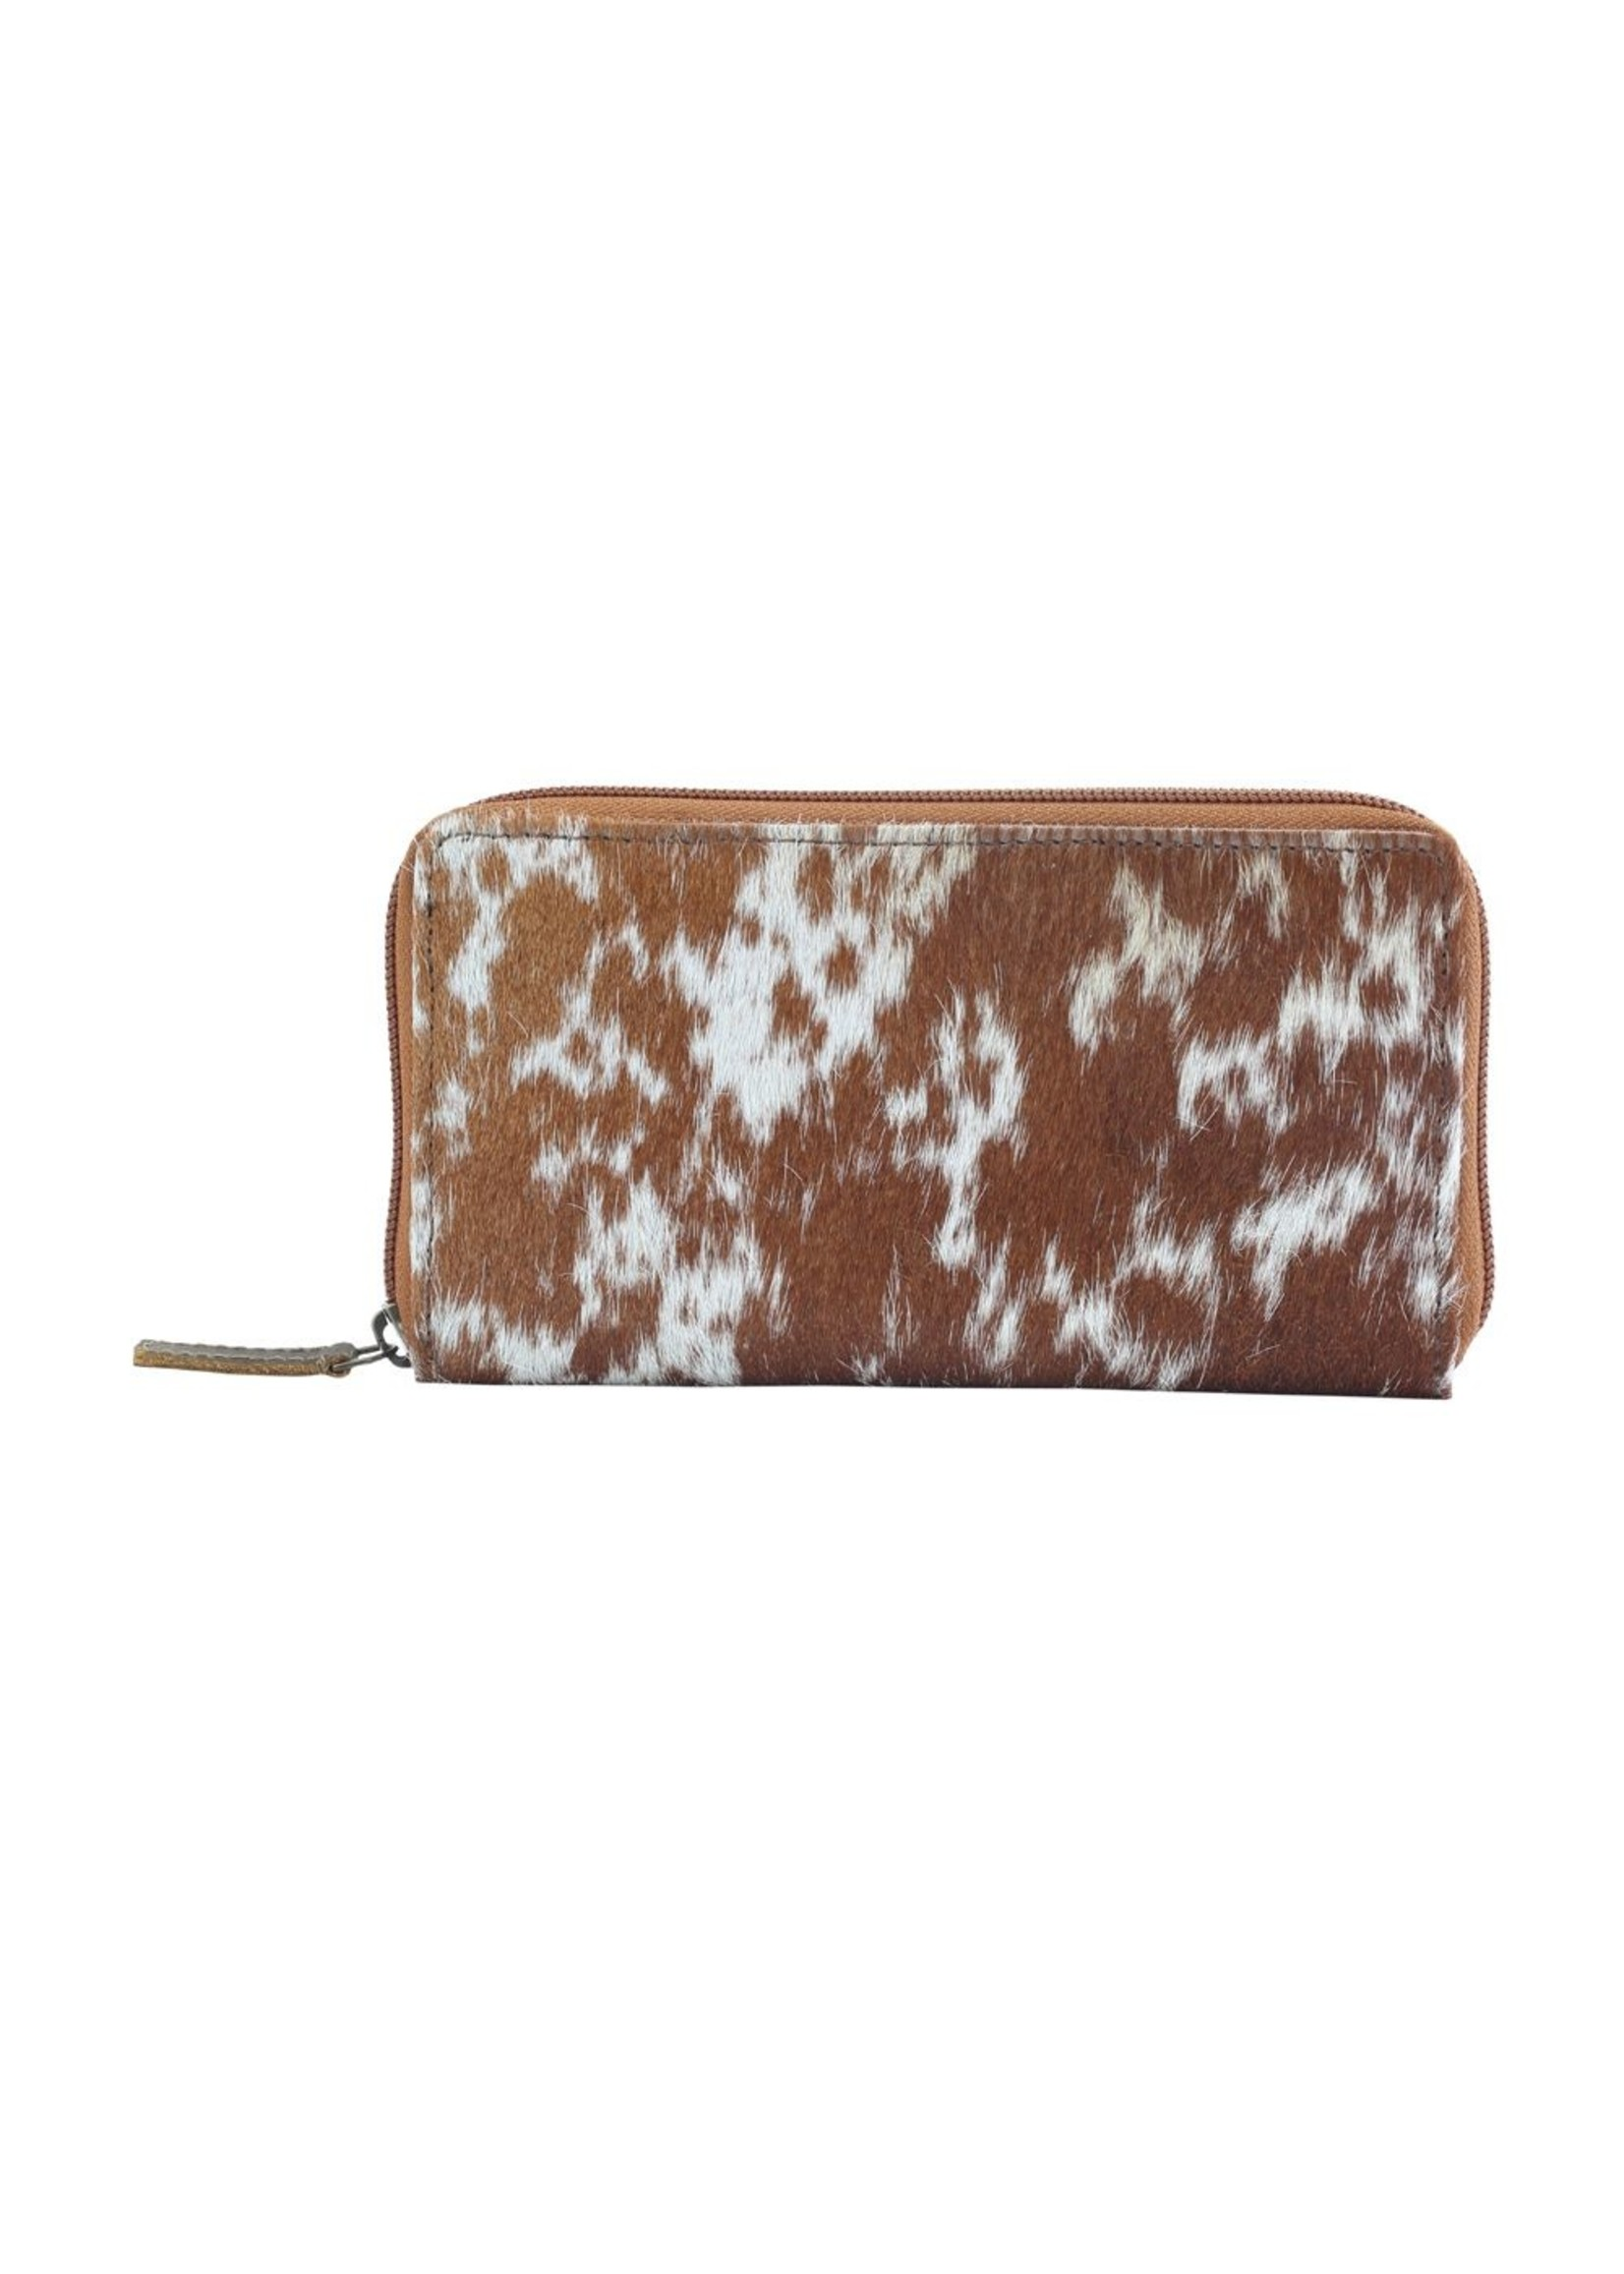 myra bags Milky Way Leather & Hairon Wallet